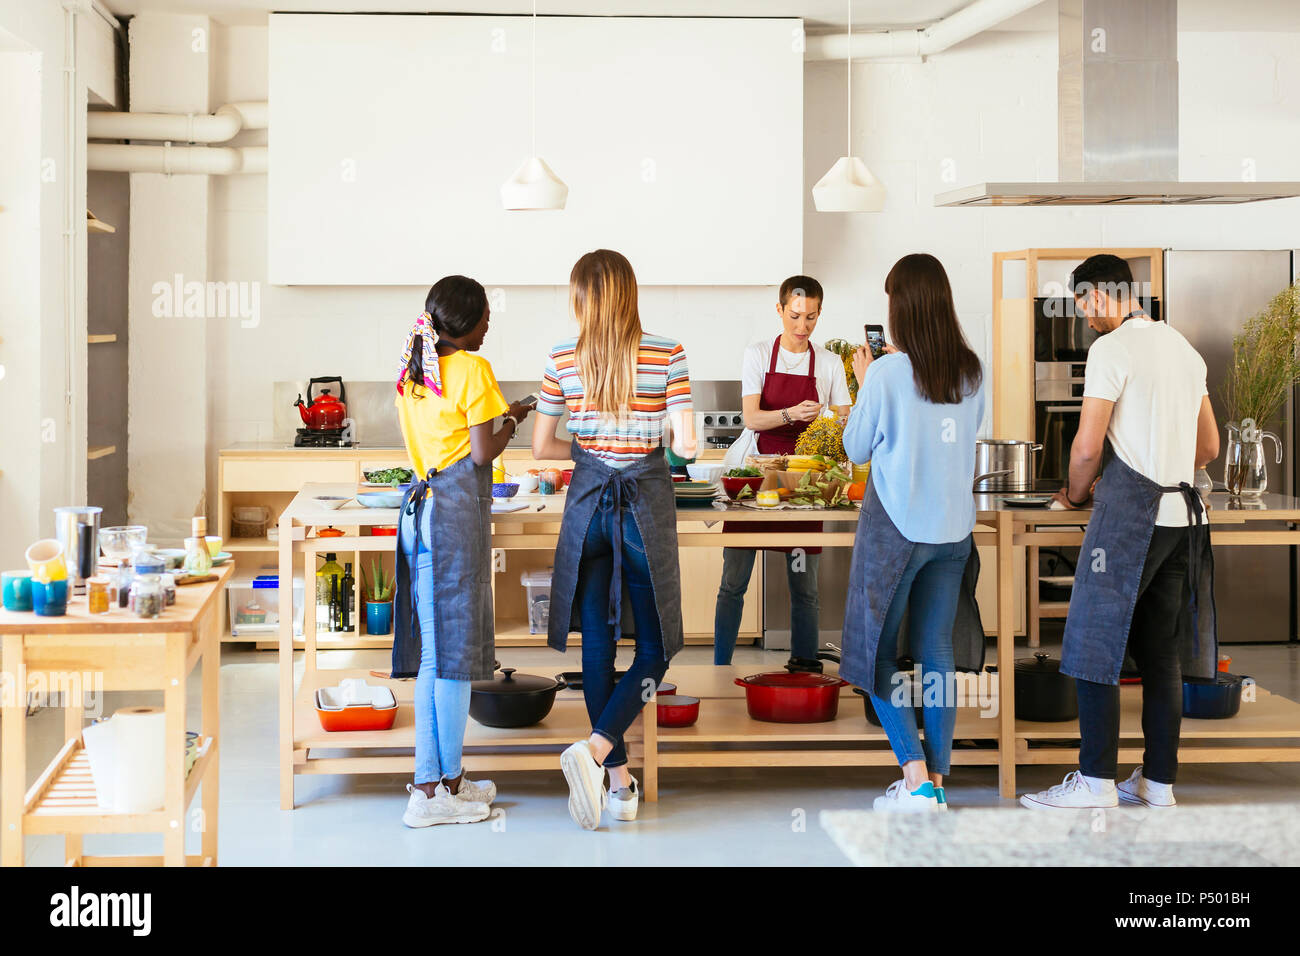 Friends and instructor in a cooking workshop preparing food - Stock Image